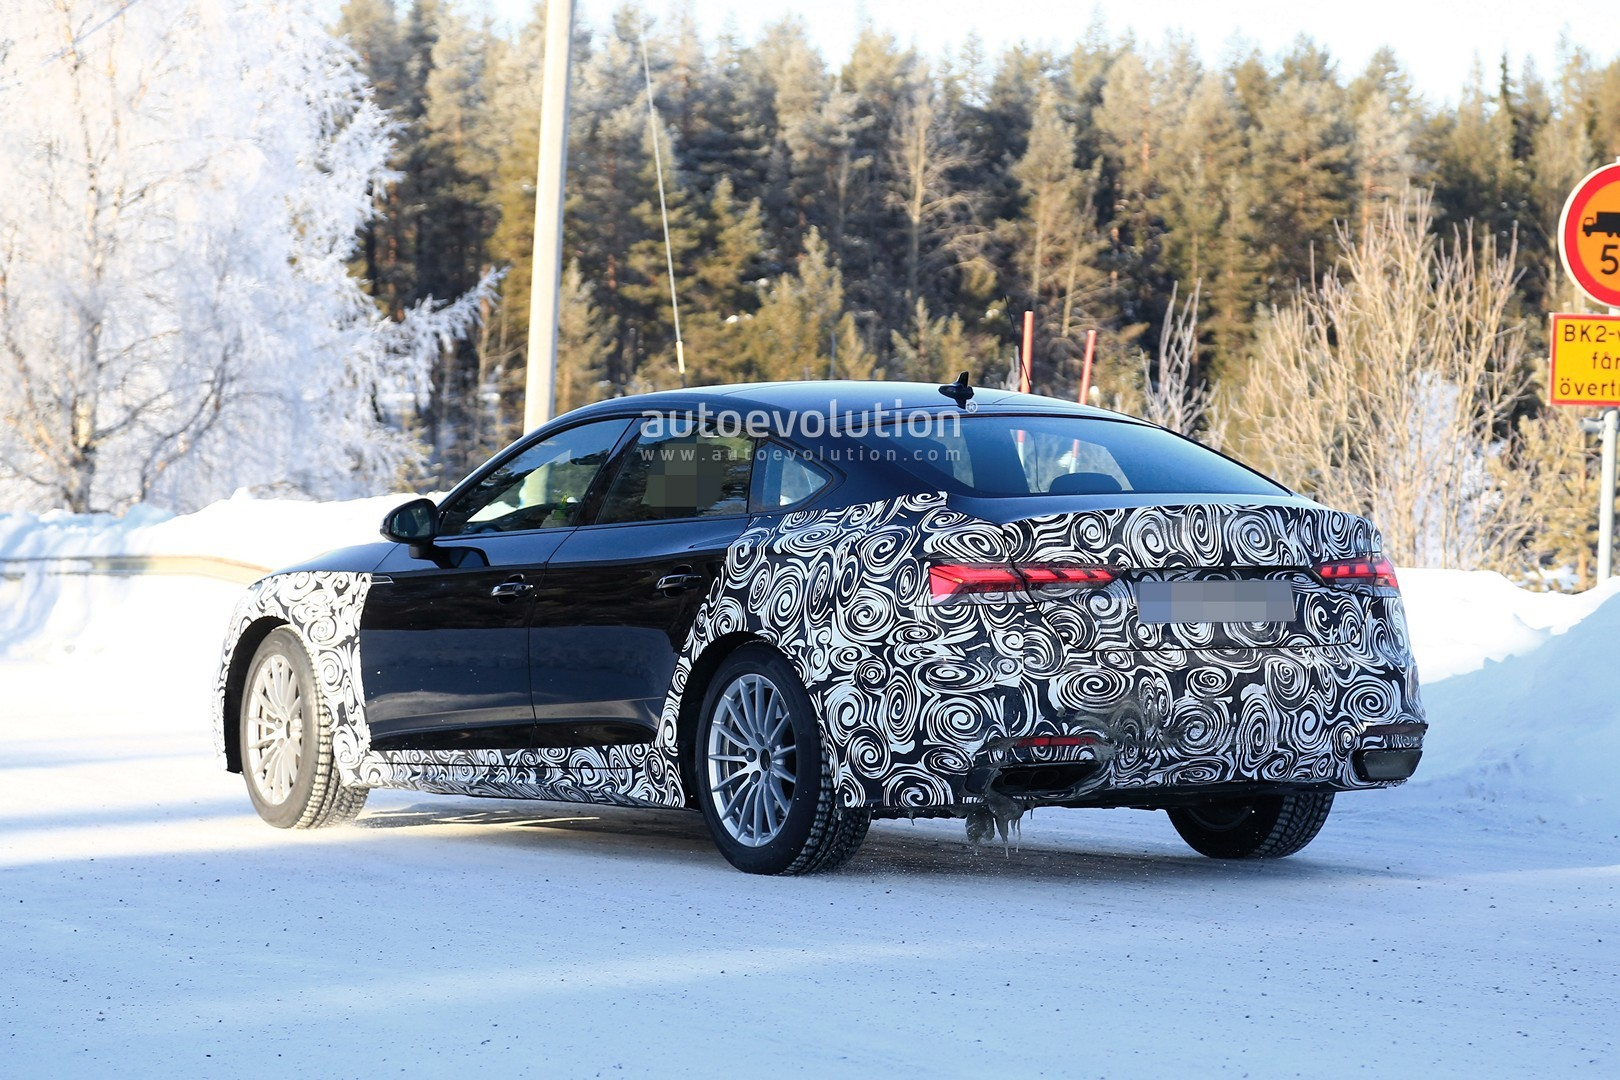 2020 audi a5 sportback spied with new lights, is going